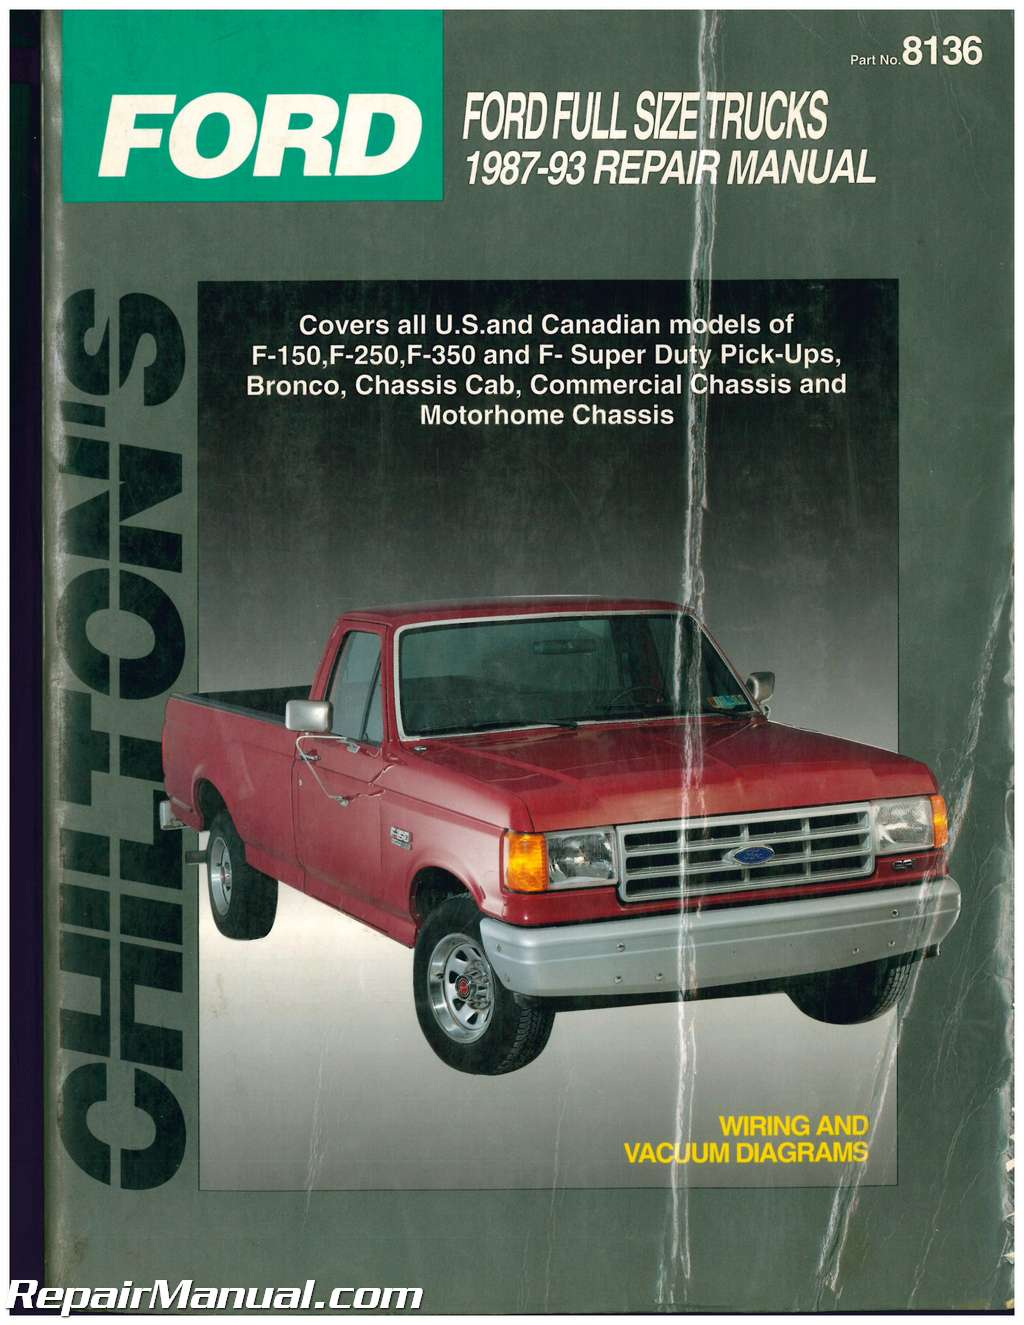 1987 Ford F250 Owners Manual FordPrice us